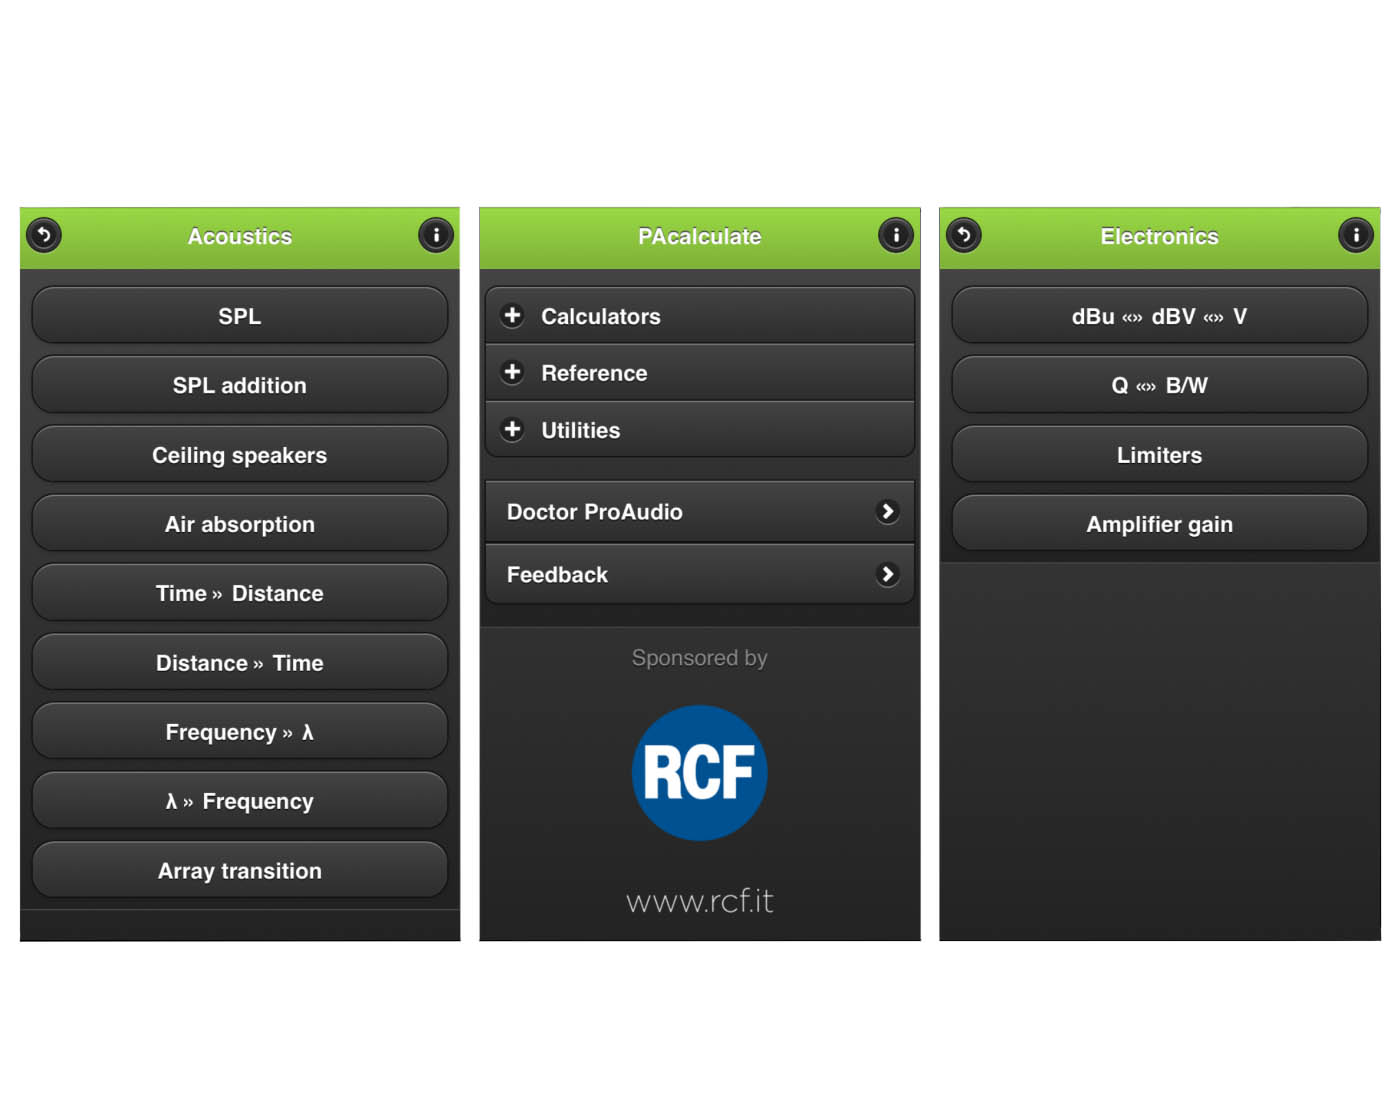 RCF Sponsors PAcalculate App for Pro Audio Industry